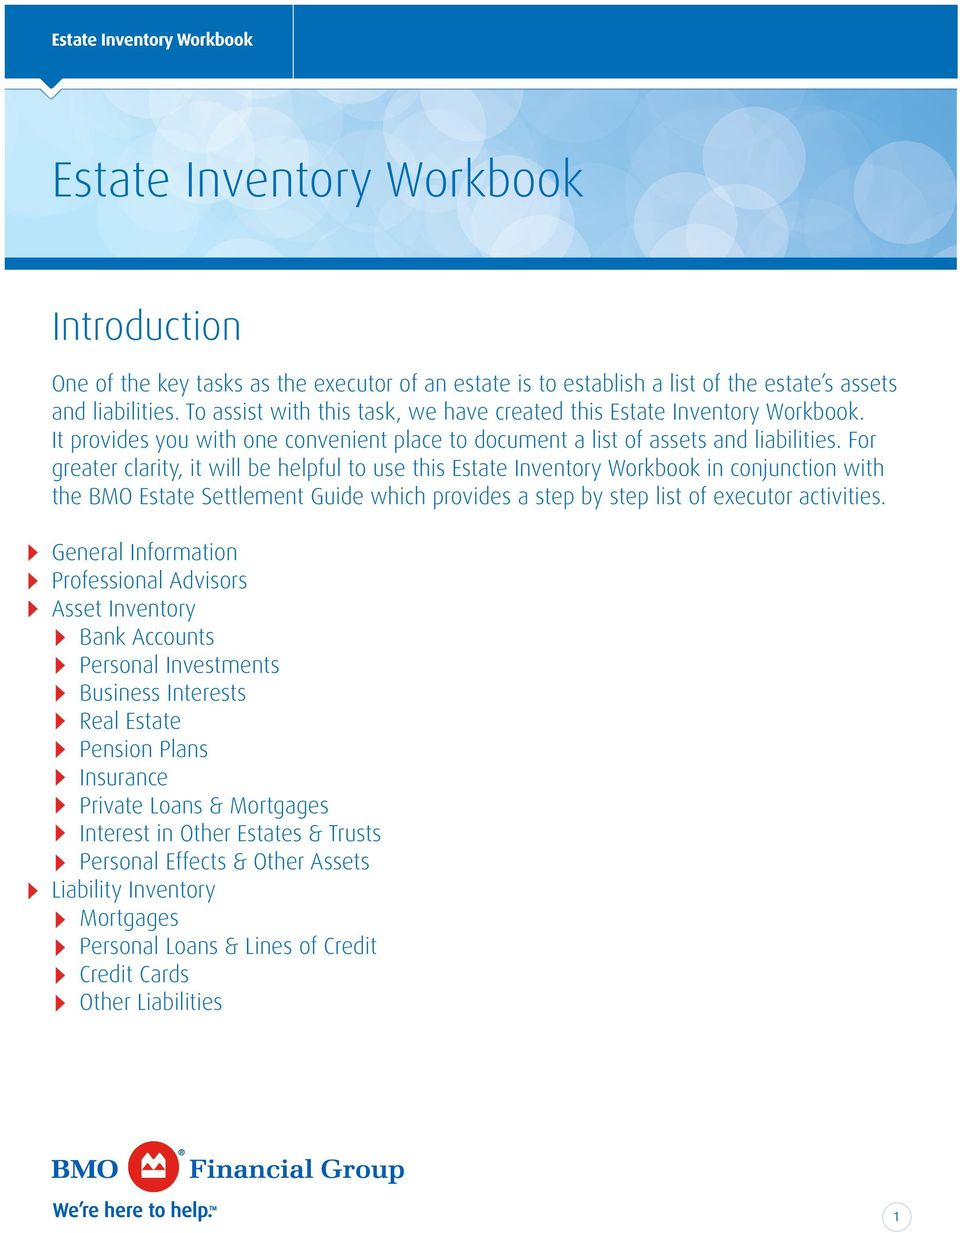 For greater clarity, it will be helpful to use this Estate Inventory Workbook in conjunction with the BMO Estate Settlement Guide which provides a step by step list of executor activities.